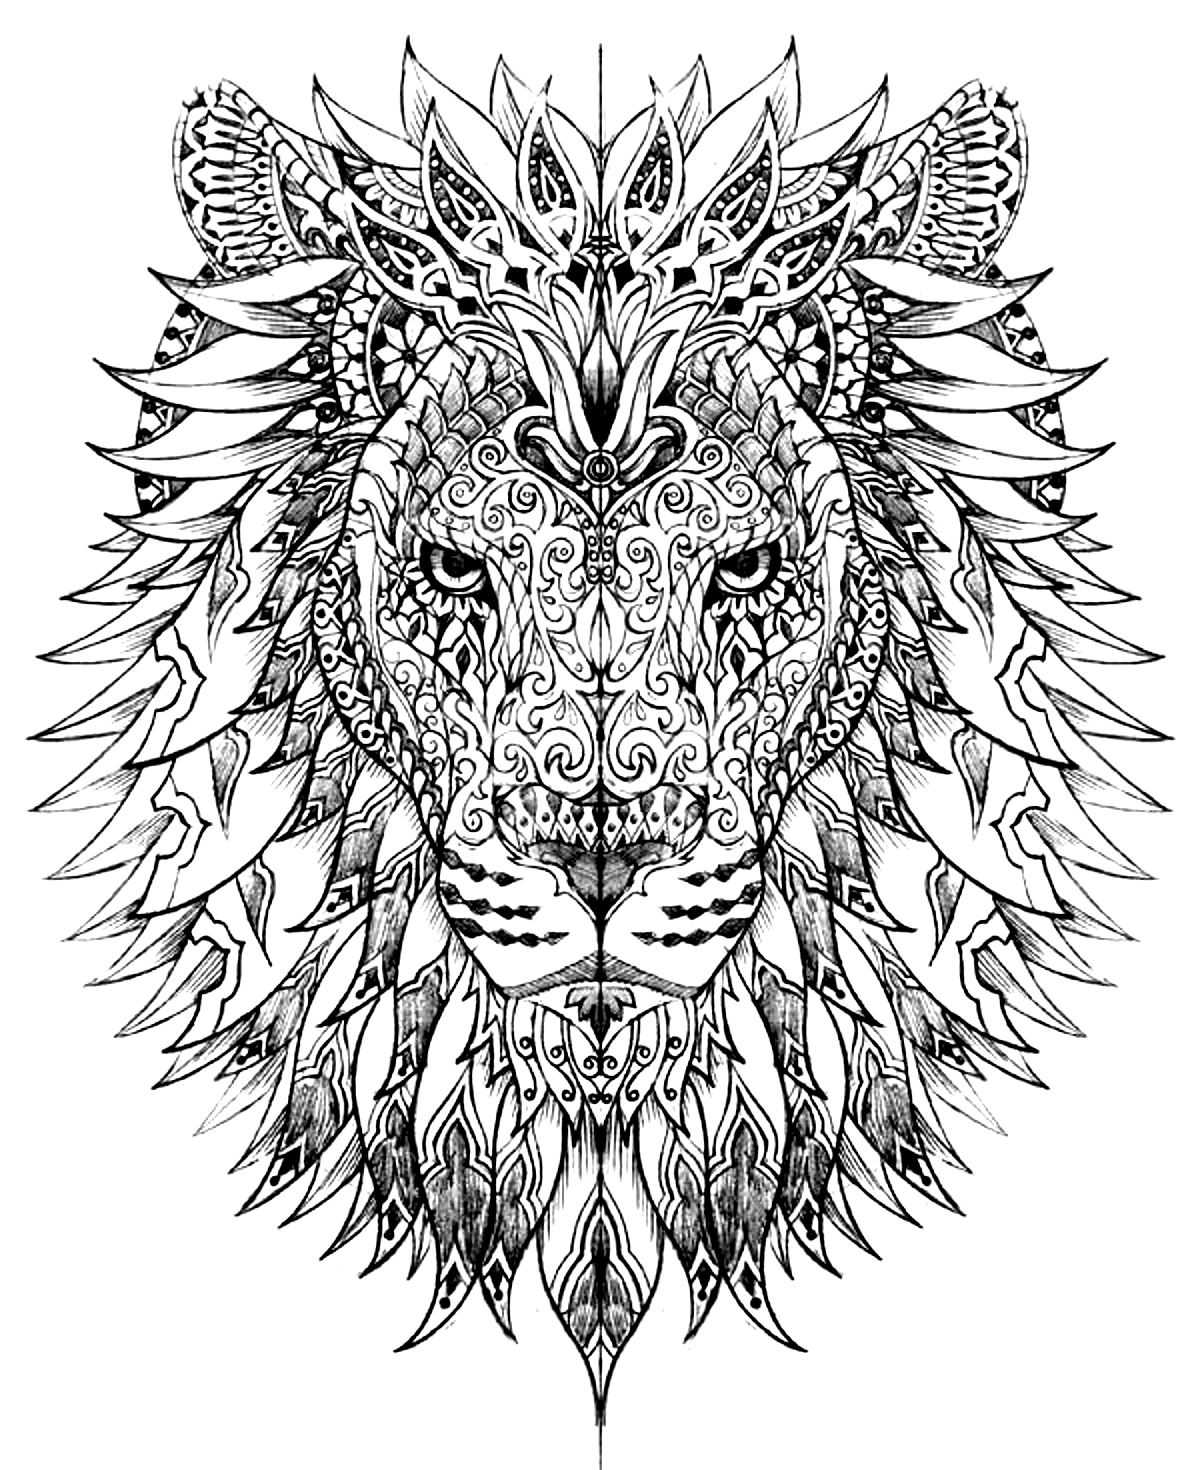 Complicated Elephant Coloring Pages.  Lion head Lions Coloring pages for adults JustColor